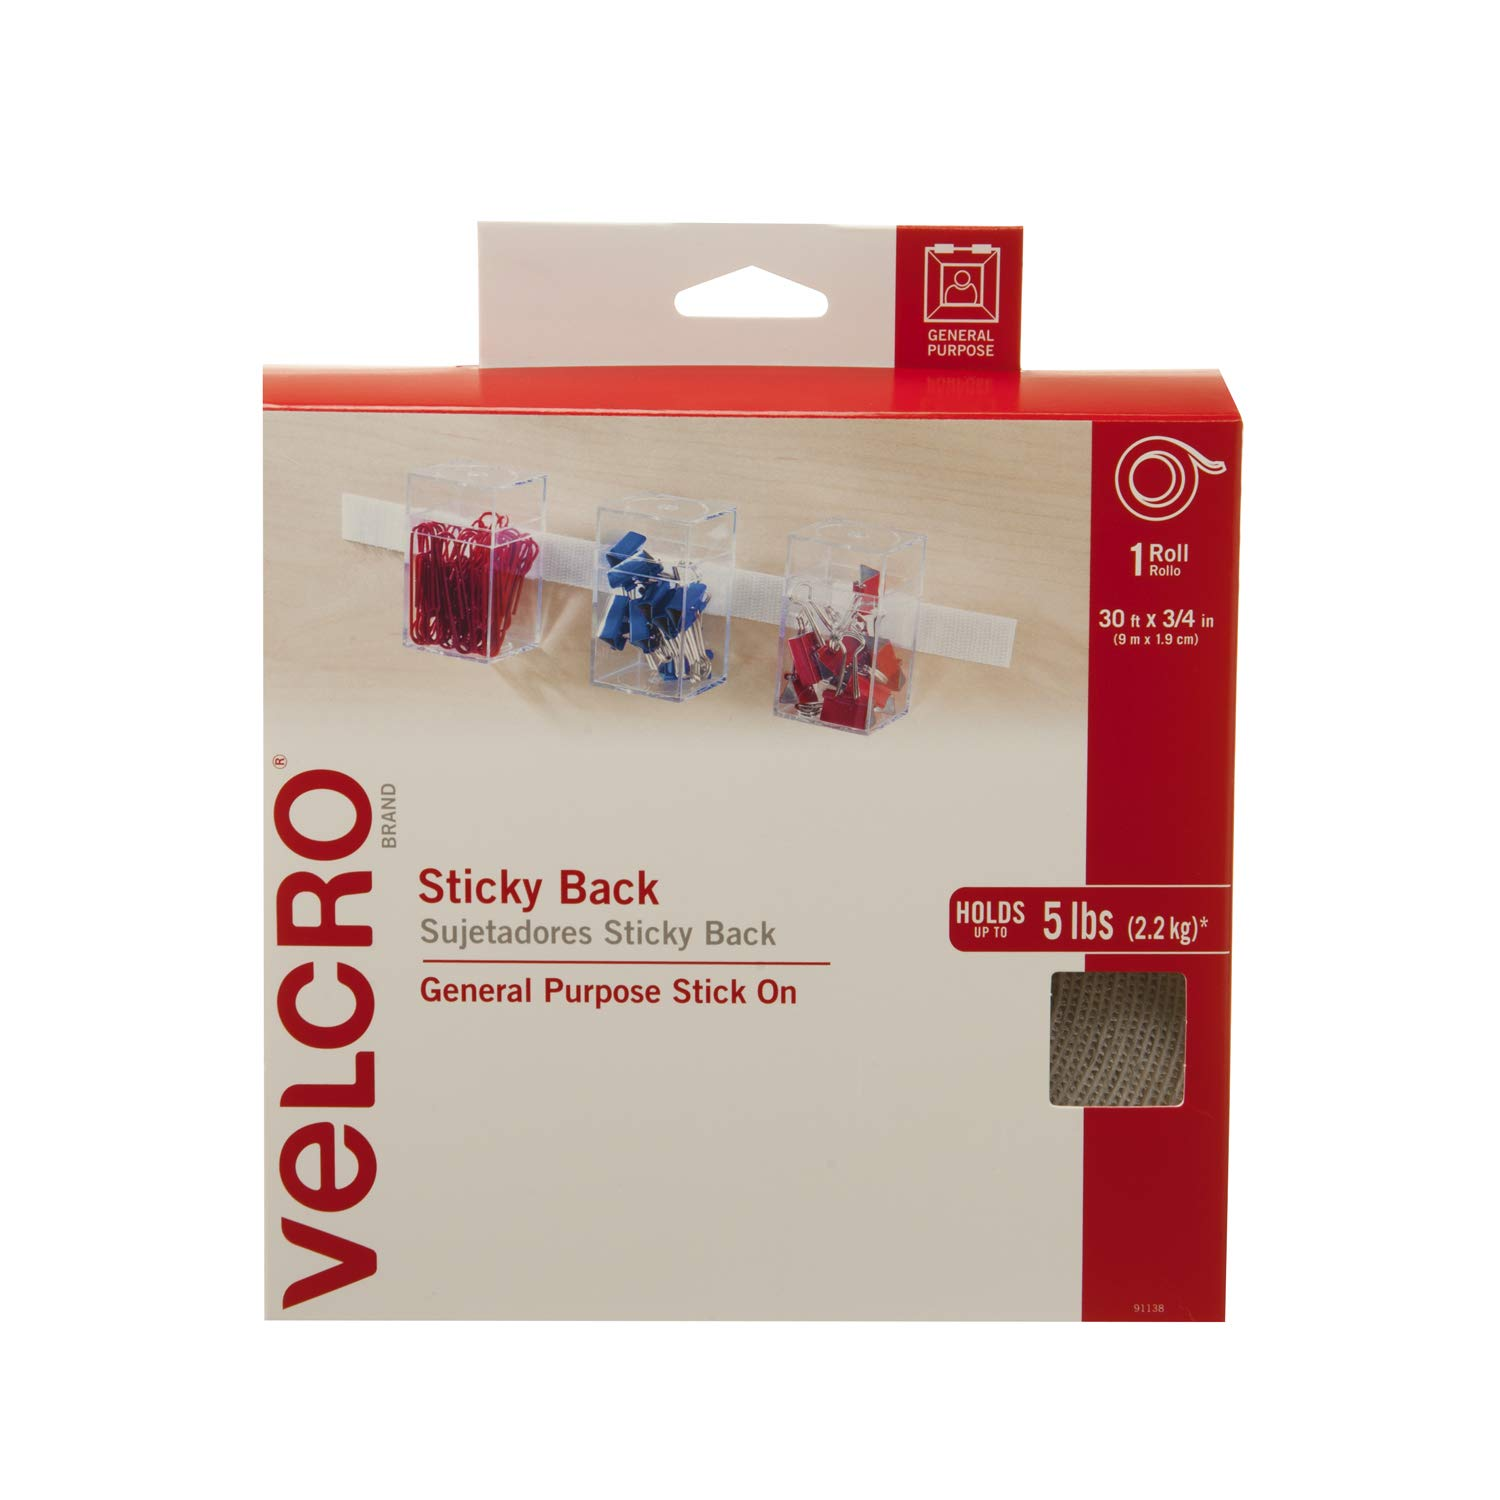 Amazon.com: VELCRO Brand - Sticky Back Hook and Loop Fasteners| Perfect for Home or Office | 5ft x 3/4in Roll | Beige: Arts, Crafts & Sewing